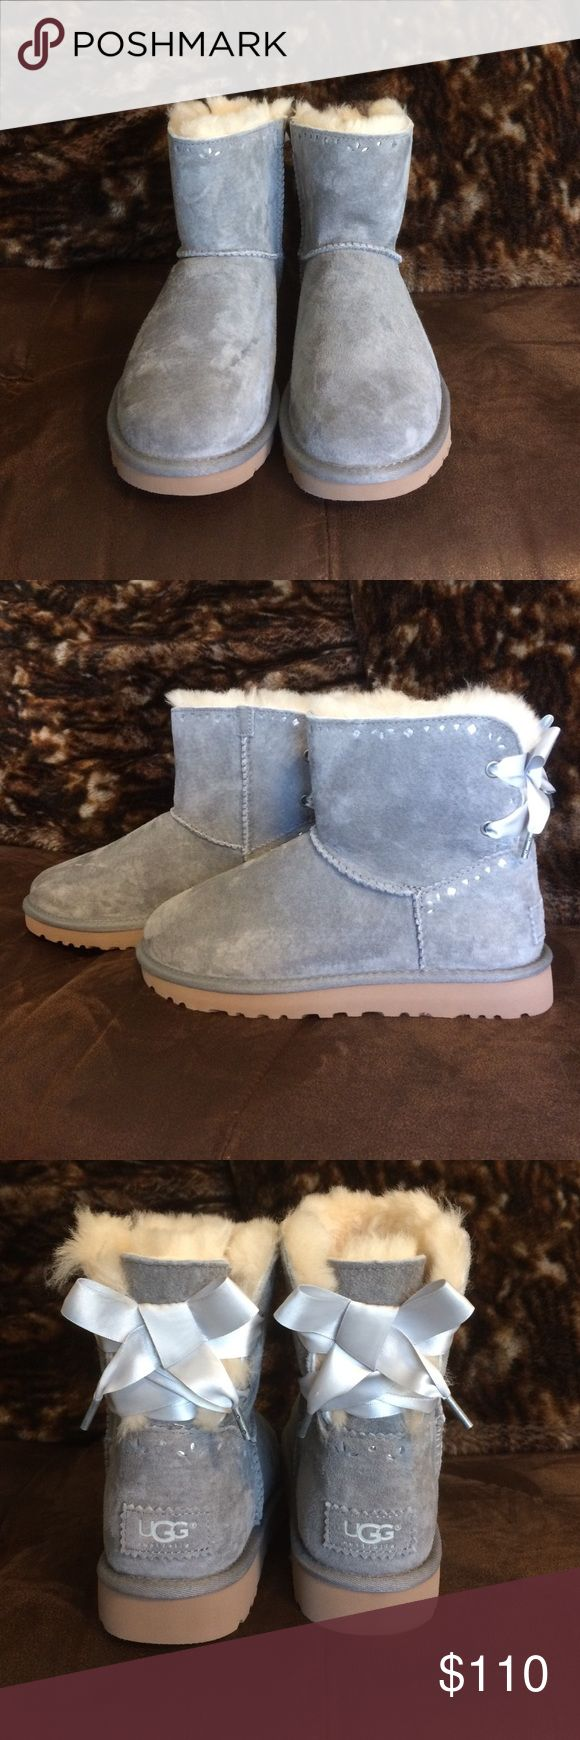 Dixi Flora Perf Women's UGG Boots New never used original UGG Boots. Color light grey. Don't have original box. UGG Shoes Winter & Rain Boots